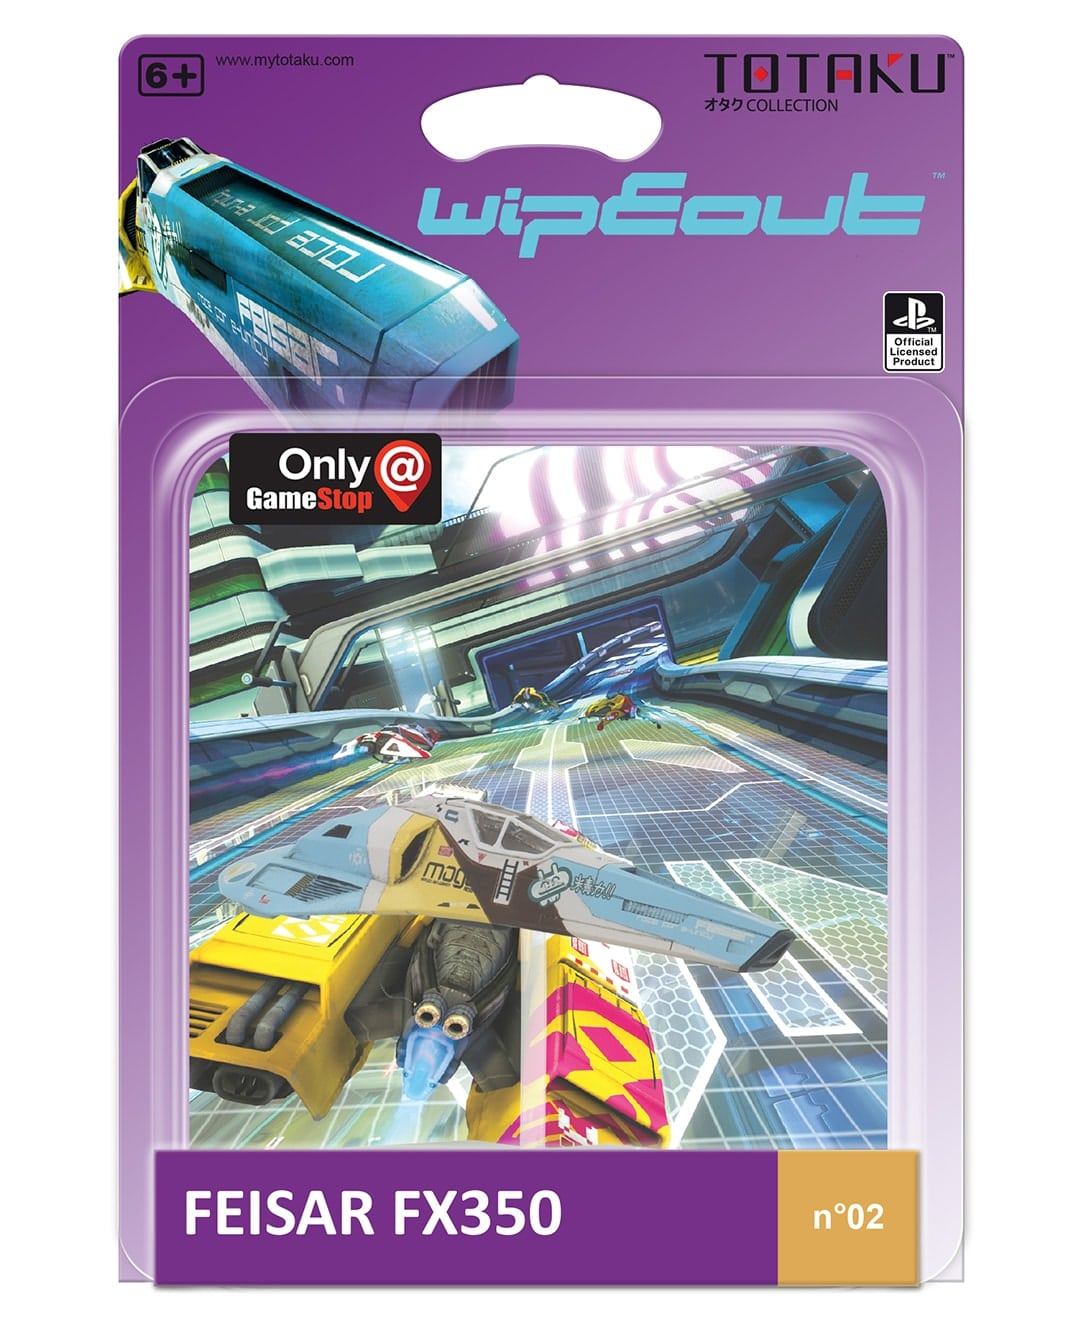 feisar wipeout totaku min - Totaku Collection - zestaw figurek z bohaterami PlayStation